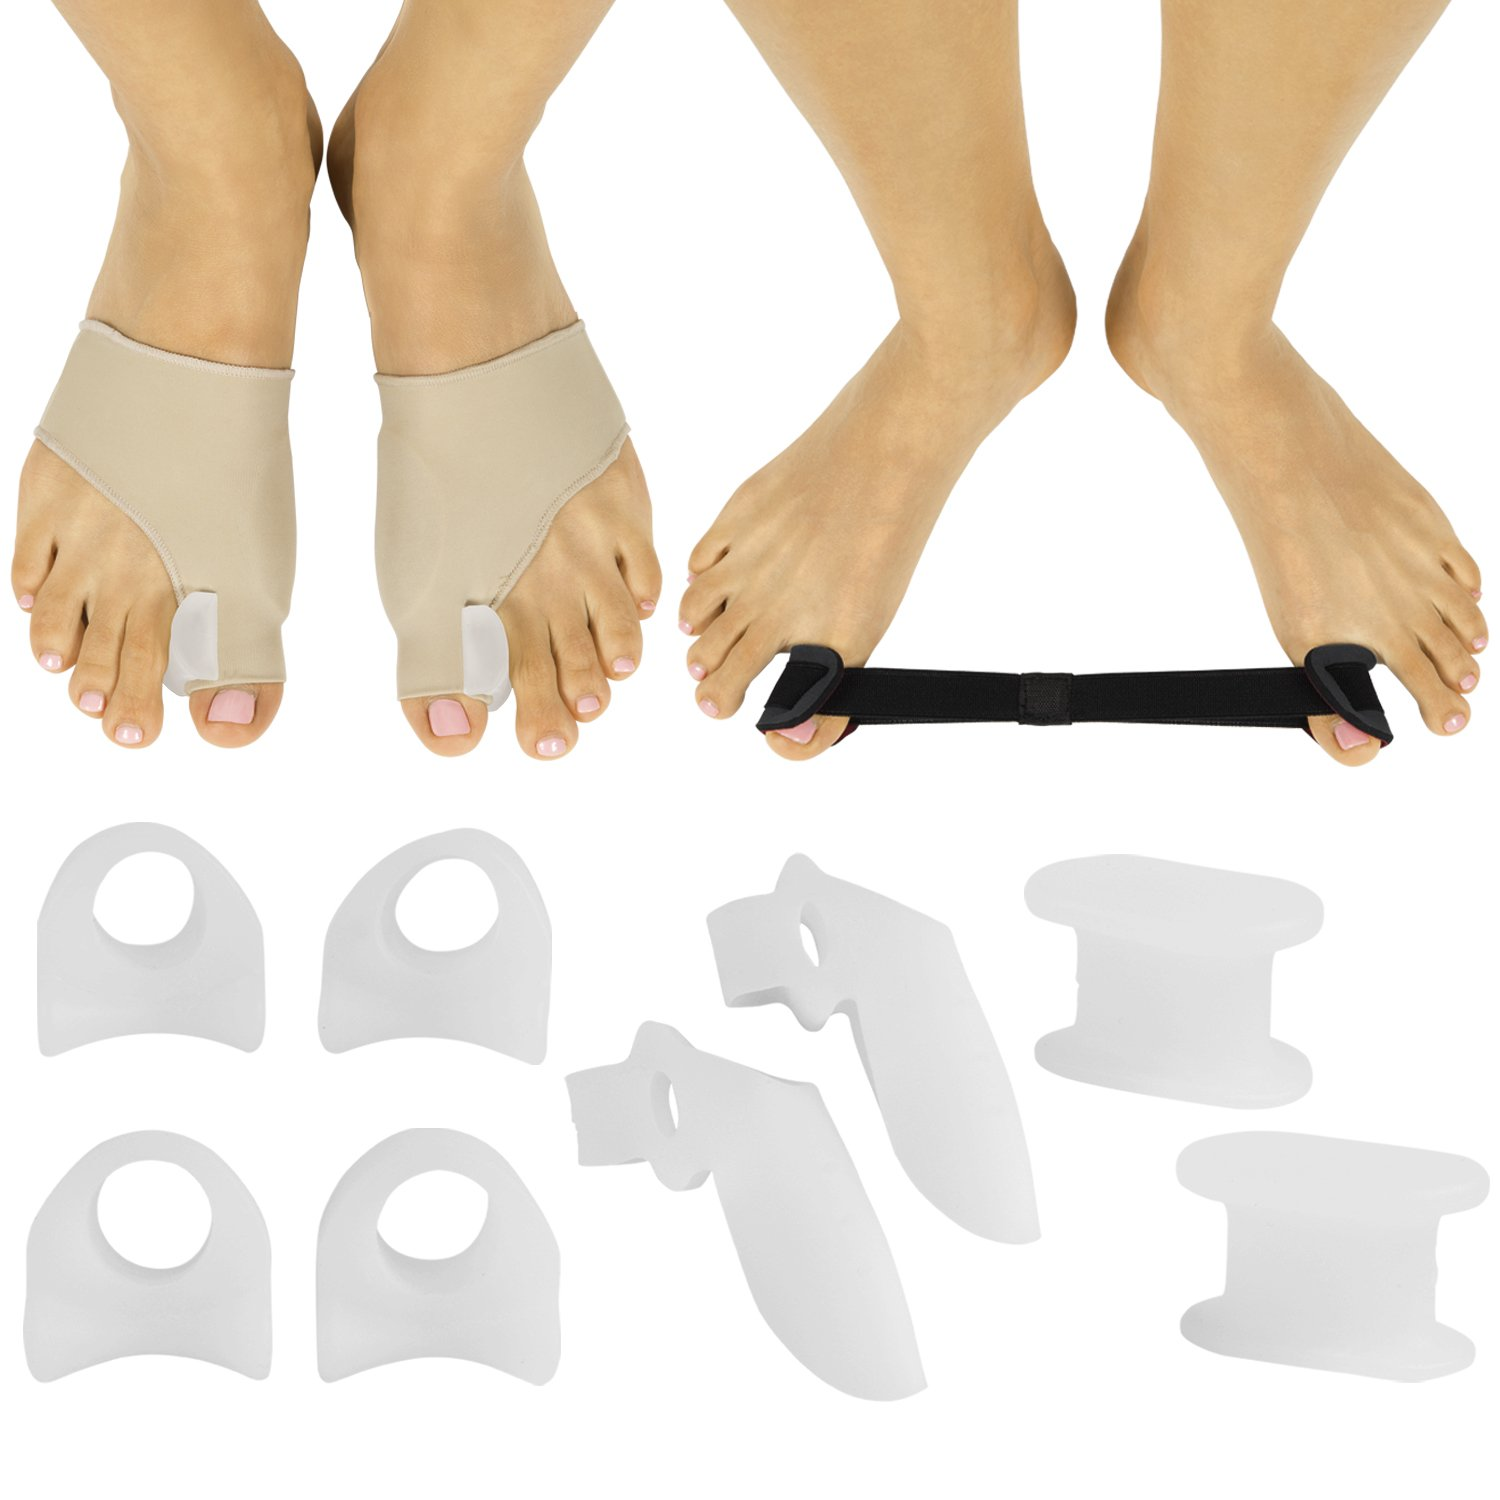 Bunion Corrector Kit by ViveSole - Hallux Valgus Relief Splint, Foot Guard, Protector, Big Toe Separator Spacer Regulator, Gel Sleeve for Bunion Treatment - Post Surgery Recovery for Feet/Foot Pain